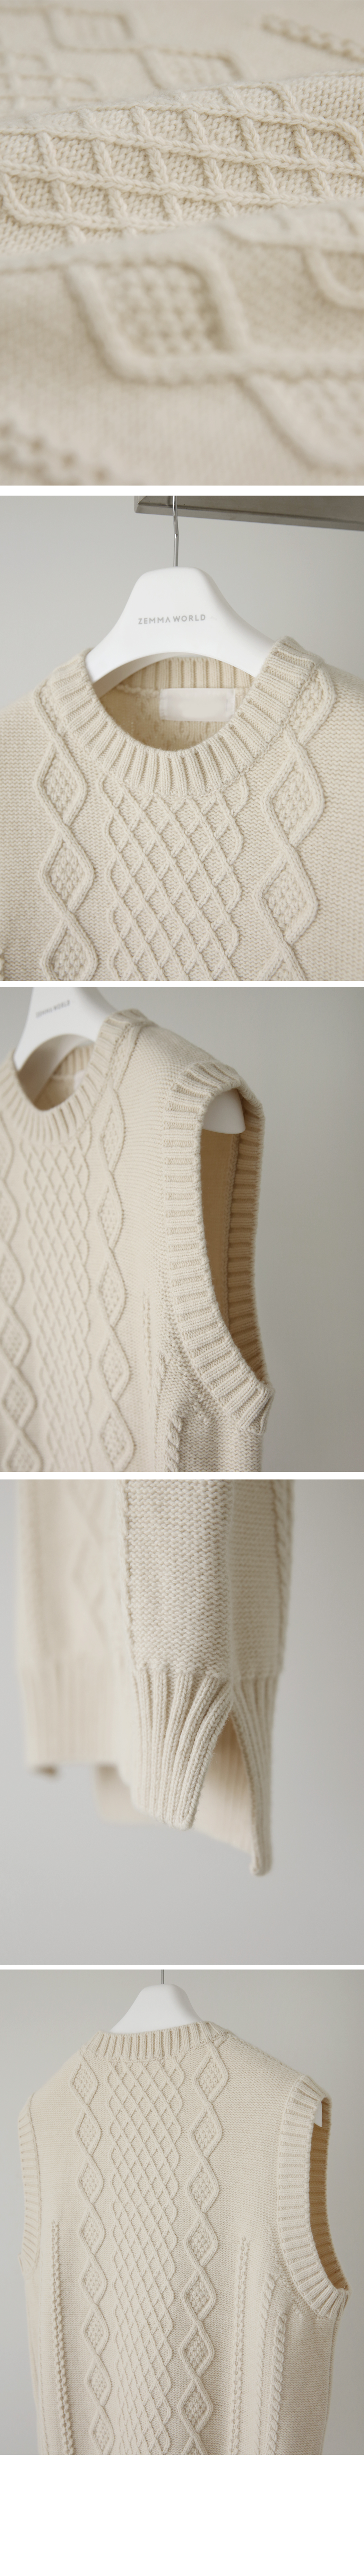 Pine Wool Cable Knit Vest